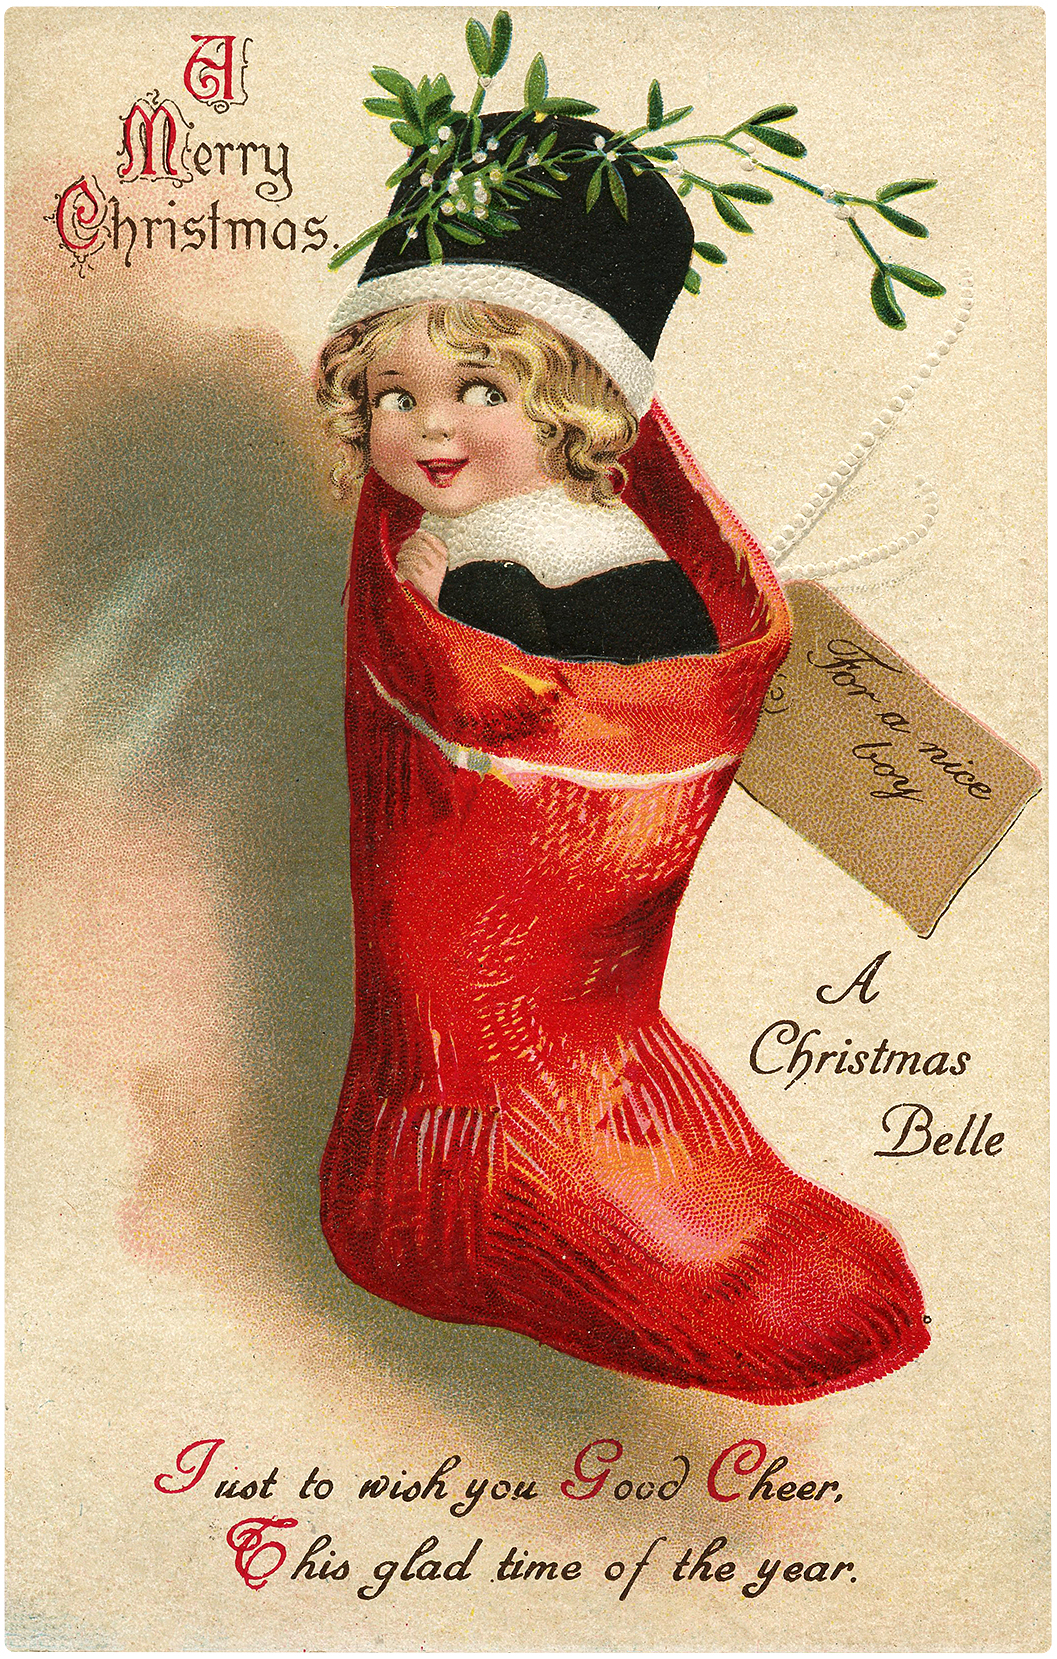 Nostalgic Elf in Christmas Stocking Image!